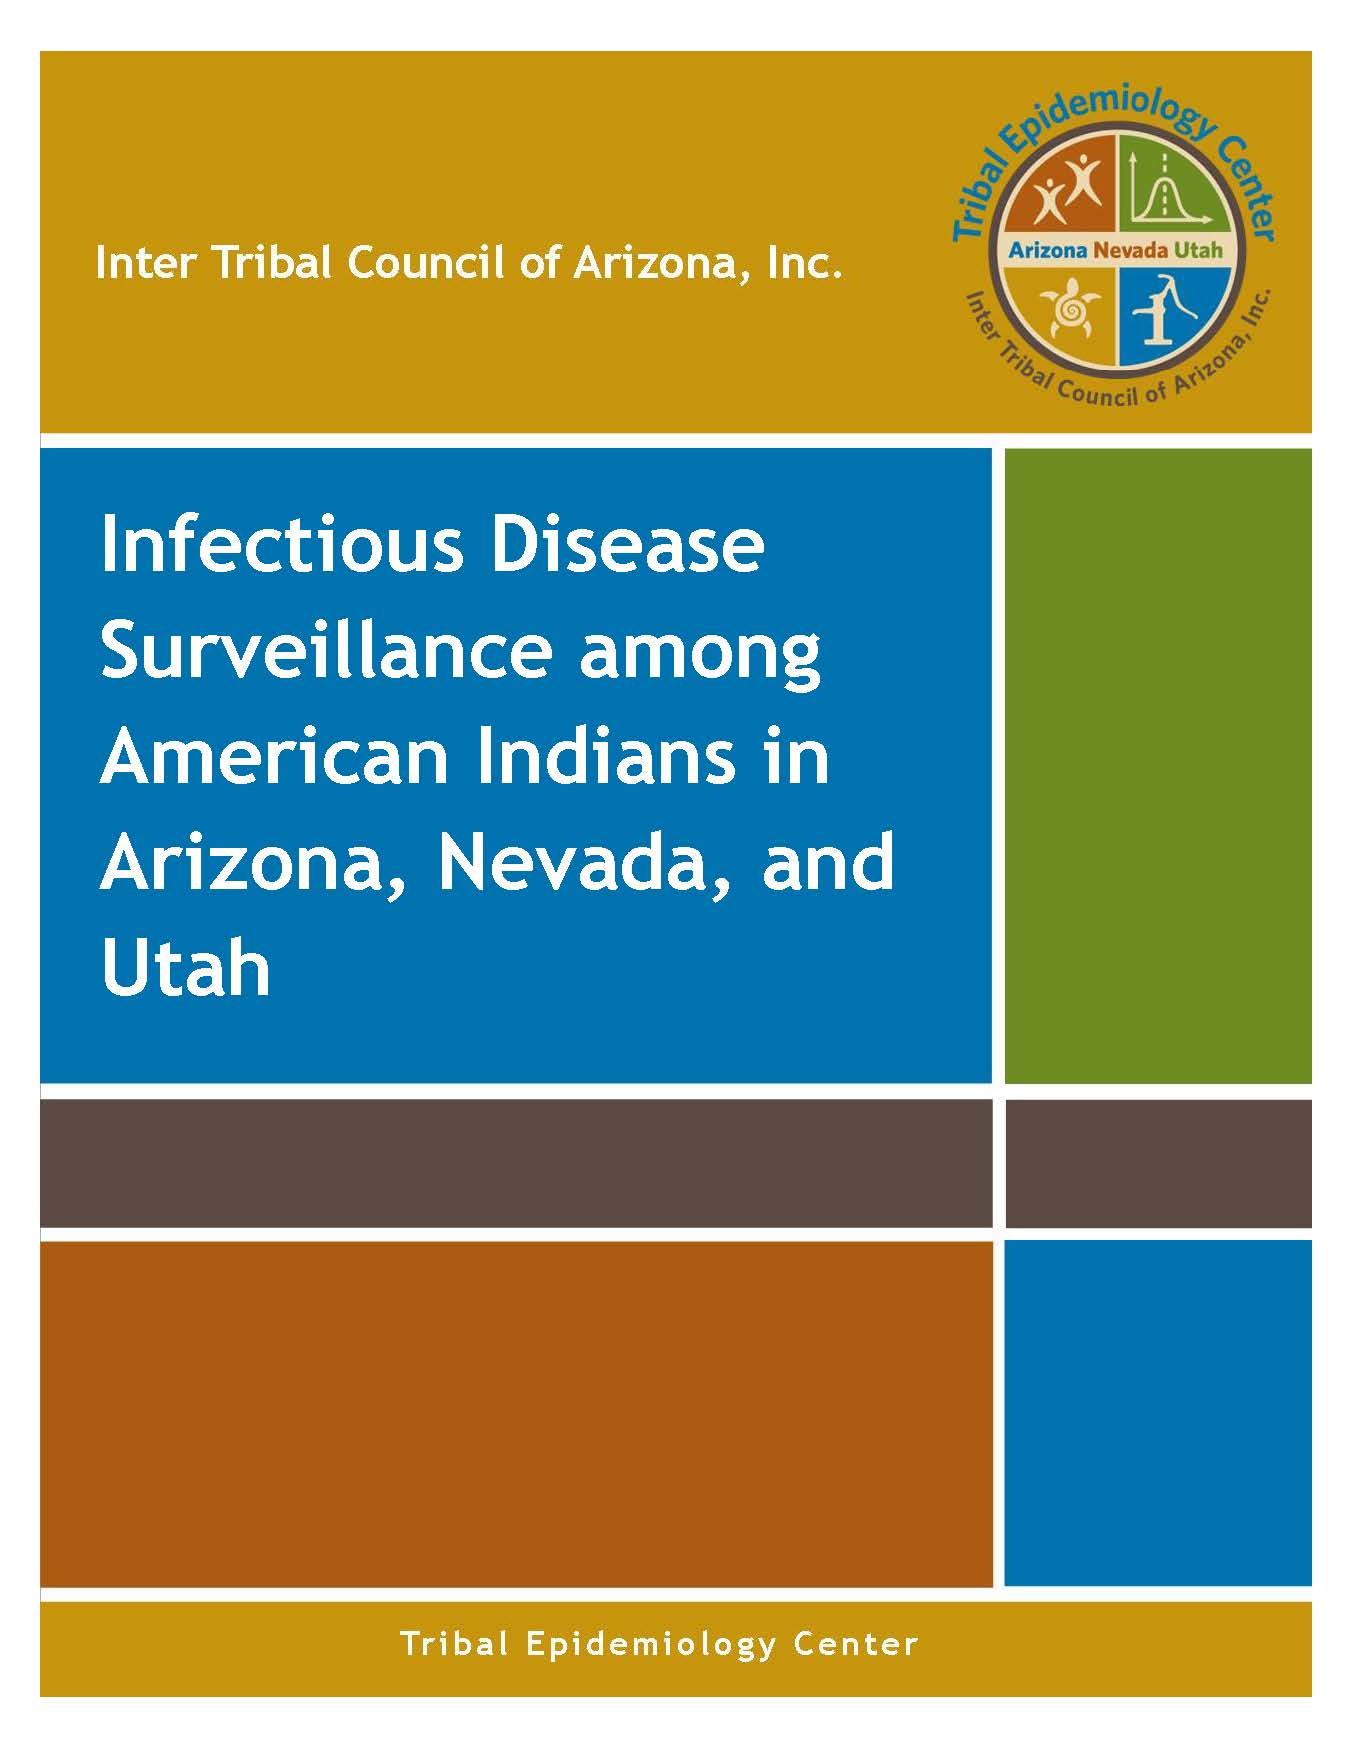 image_Infectious Disease report